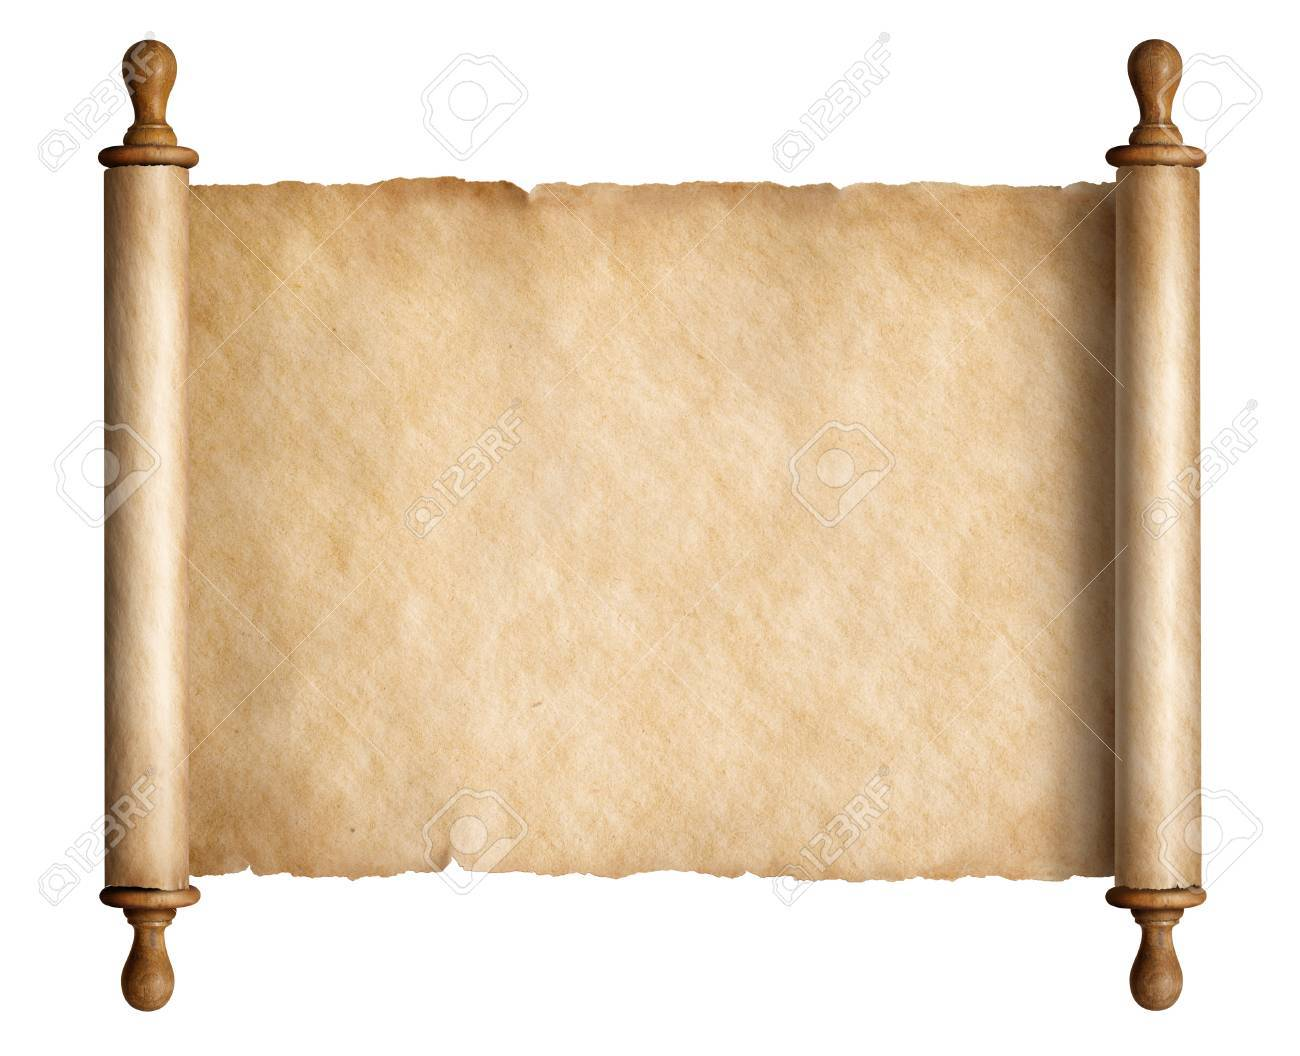 Old scroll parchment with wooden handles isolated 3d illustration - 86948143